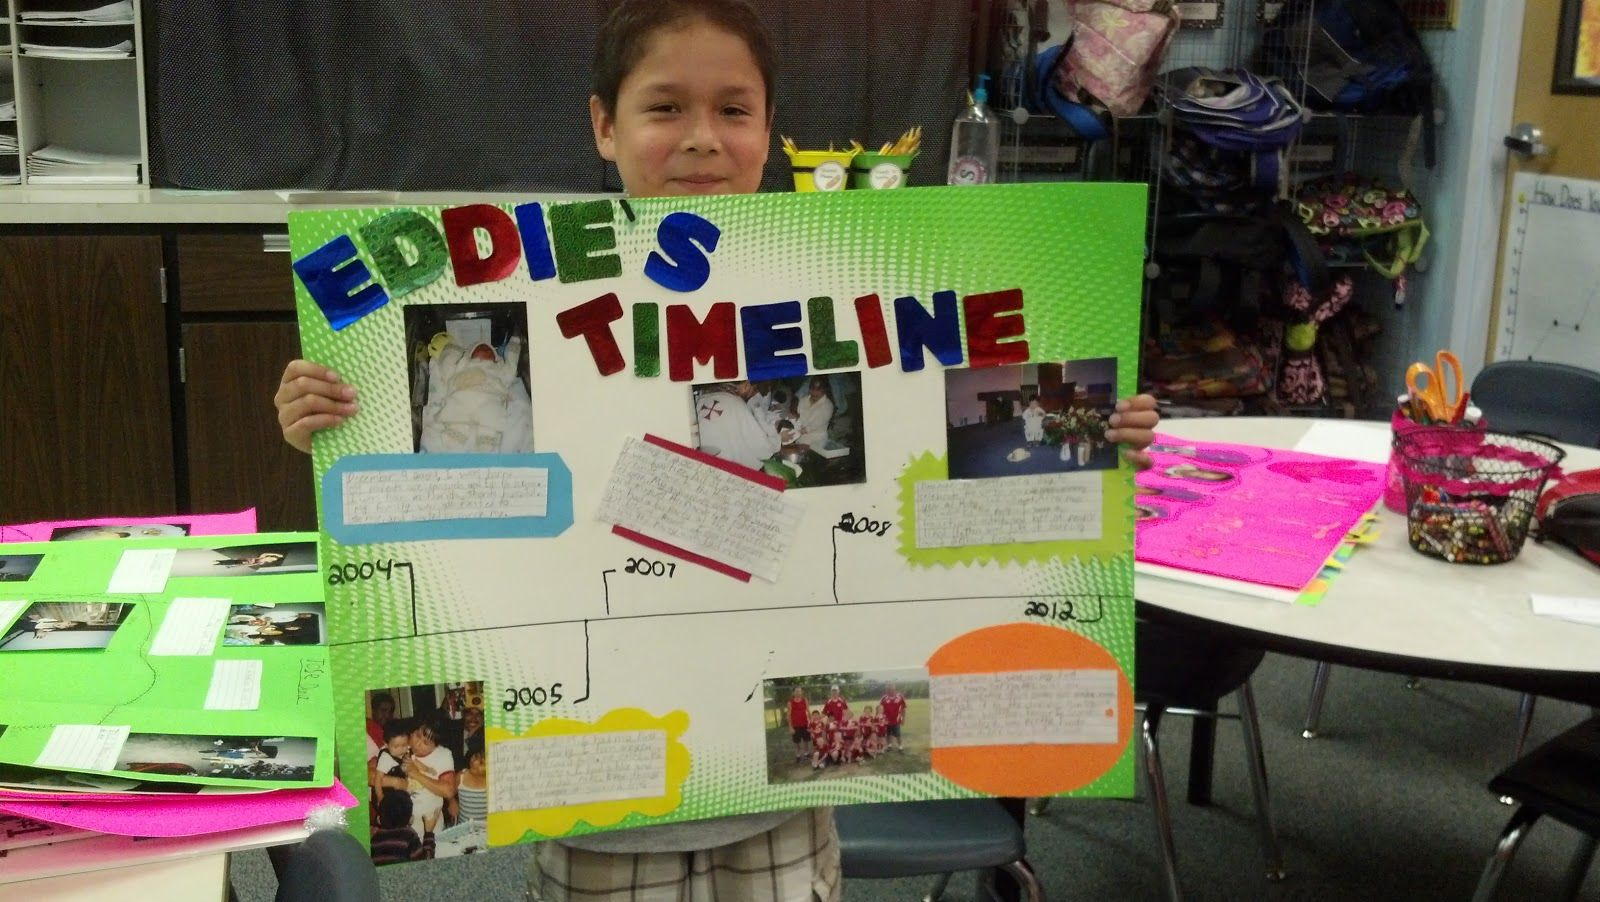 The students have been working very hard on their home timeline ...